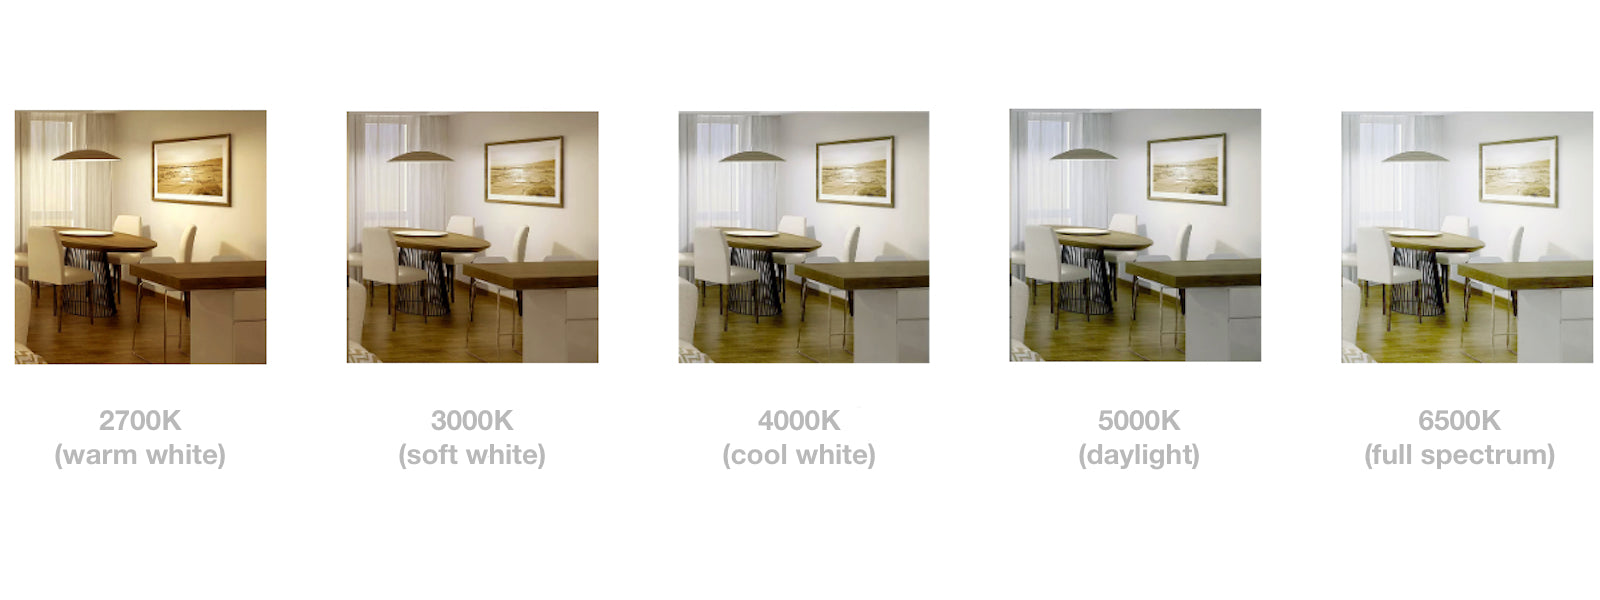 2700K-3000K-4000K-5000K-6500K-CCT-DIFFERENCES